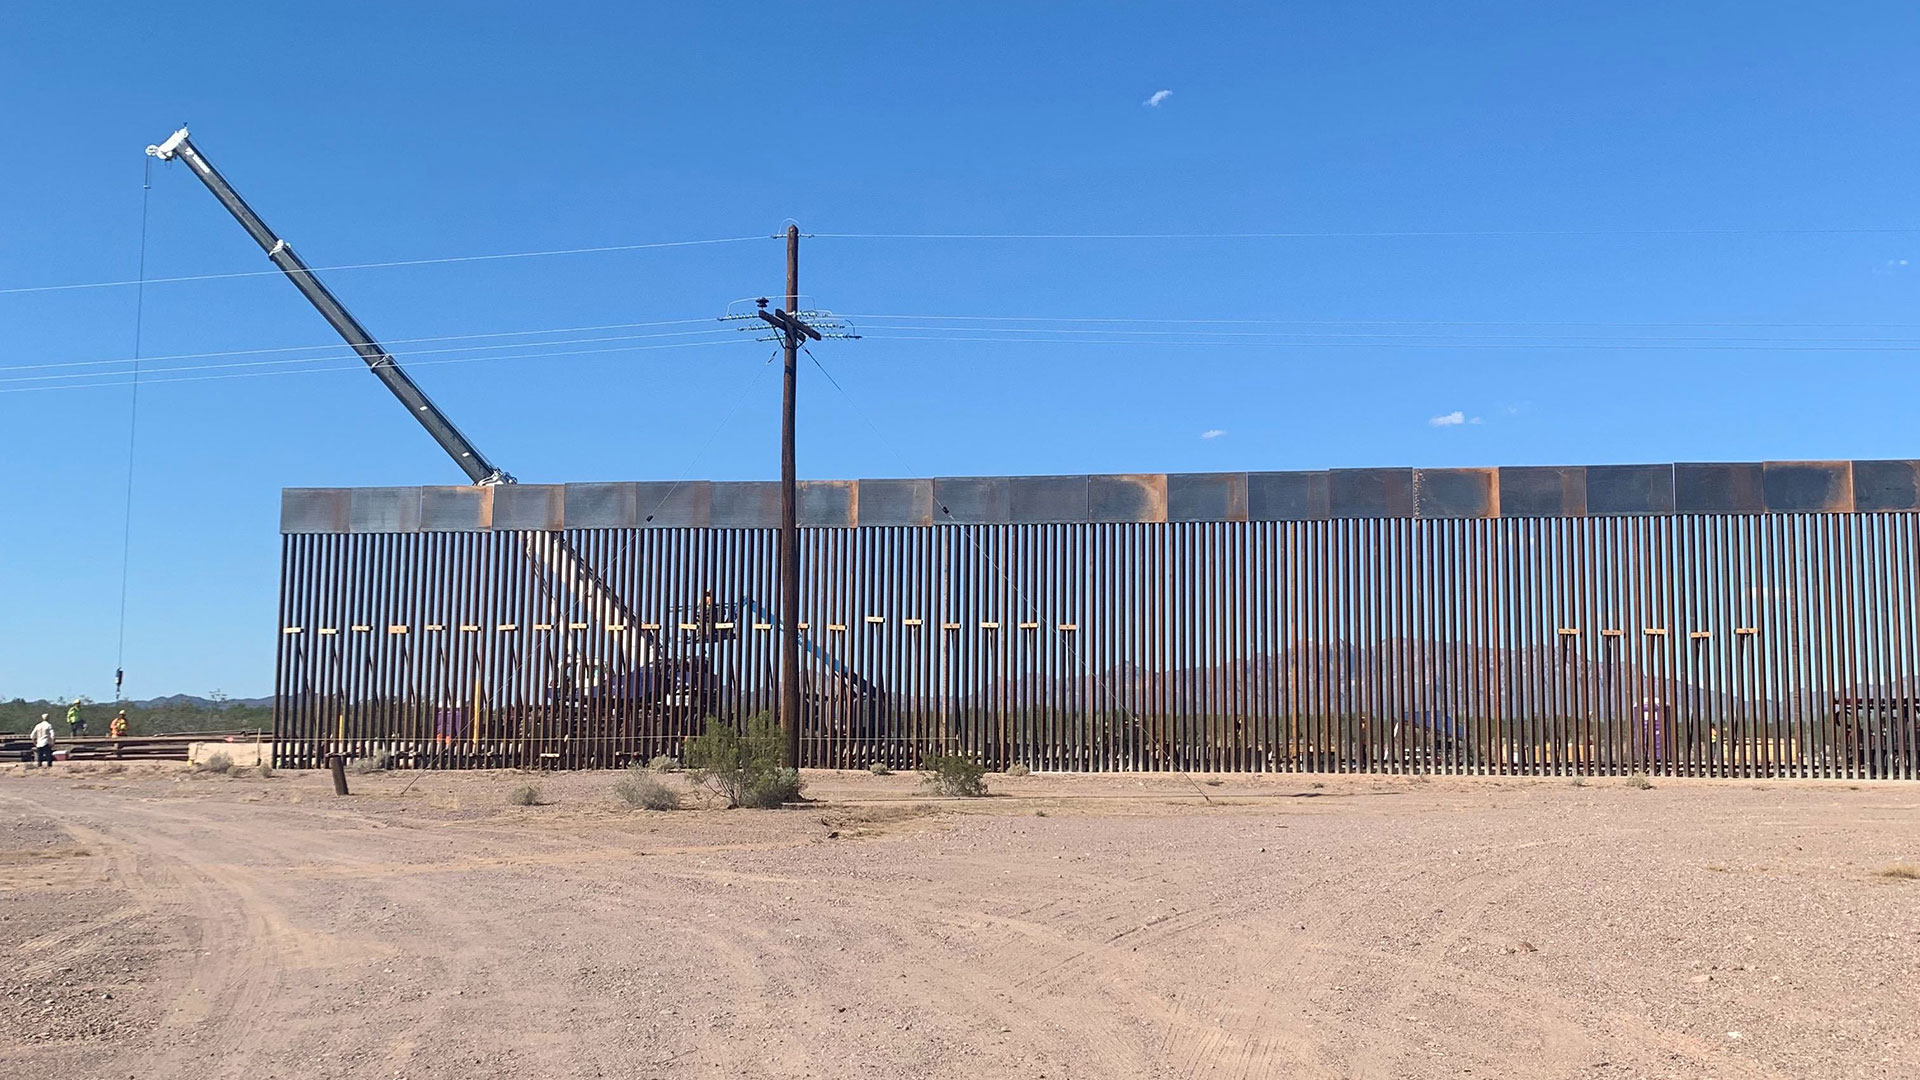 Construction on new border wall fencing at Organ Pipe Cactus National Monument in September, 2019.